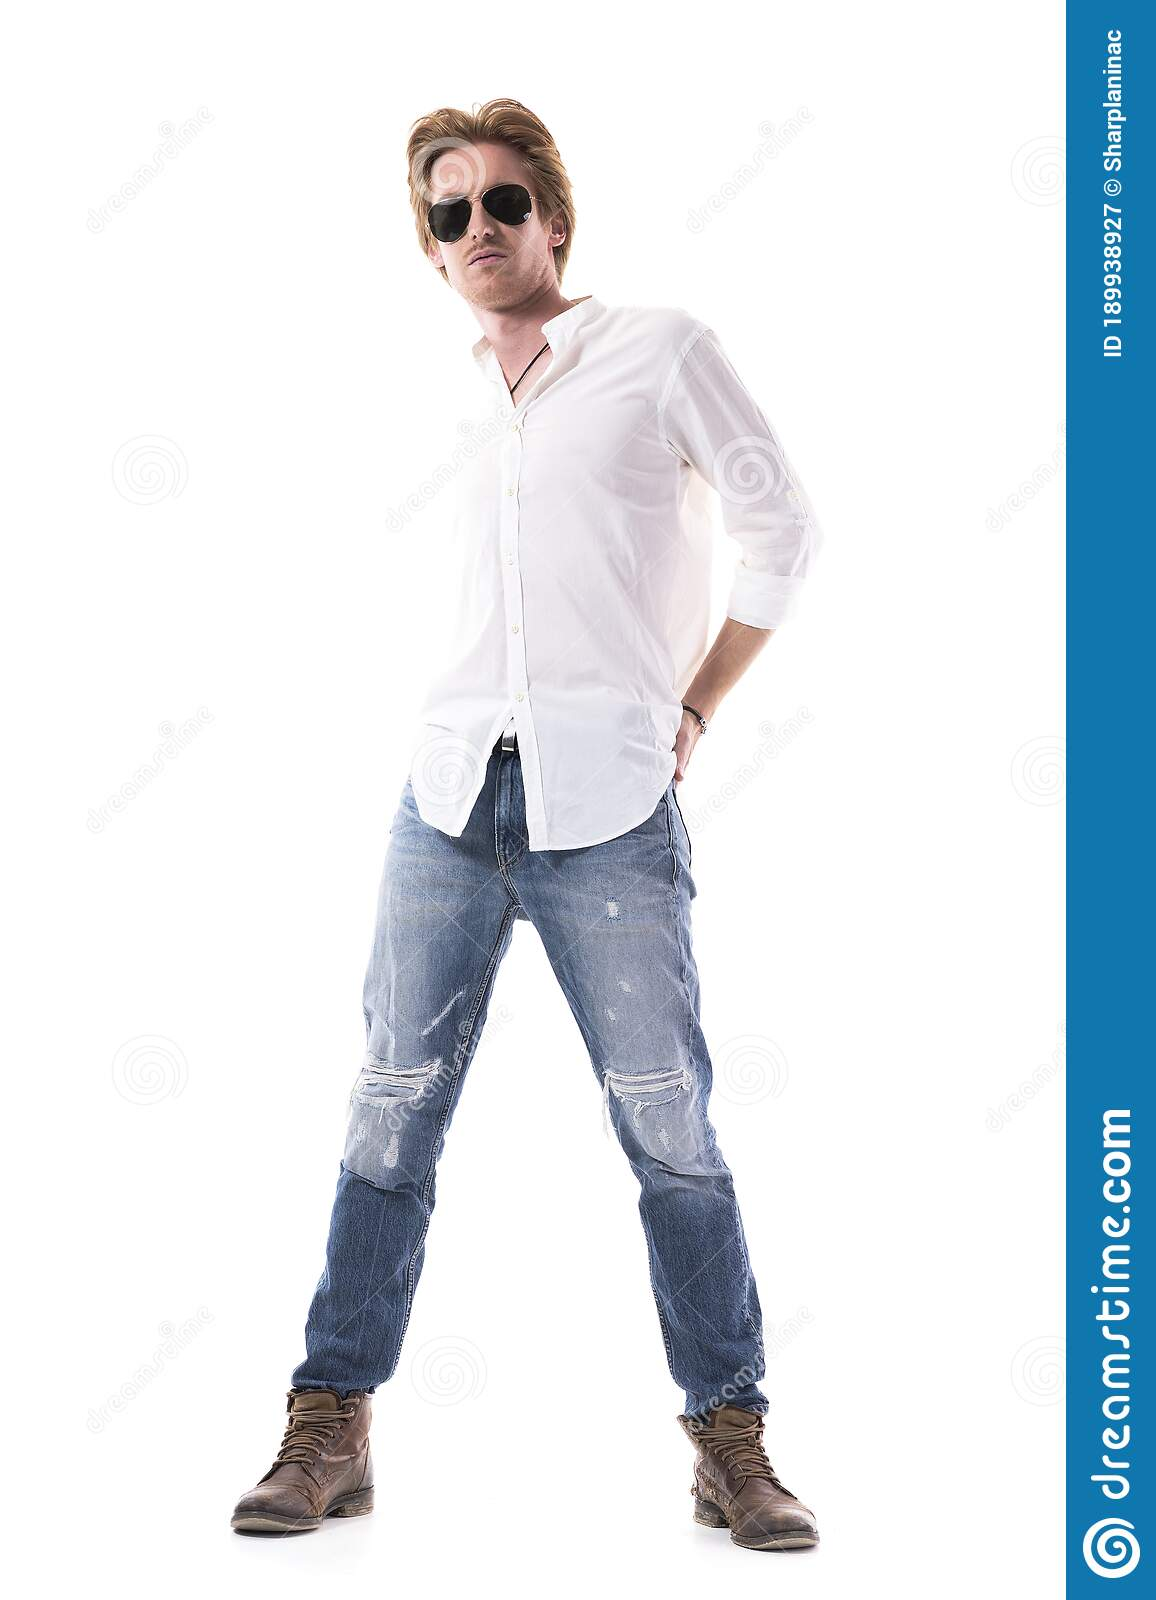 Model jeans image 4 129 Handsome Young Male Model Wearing Jeans Shirt Photos Free Royalty Free Stock Photos From Dreamstime